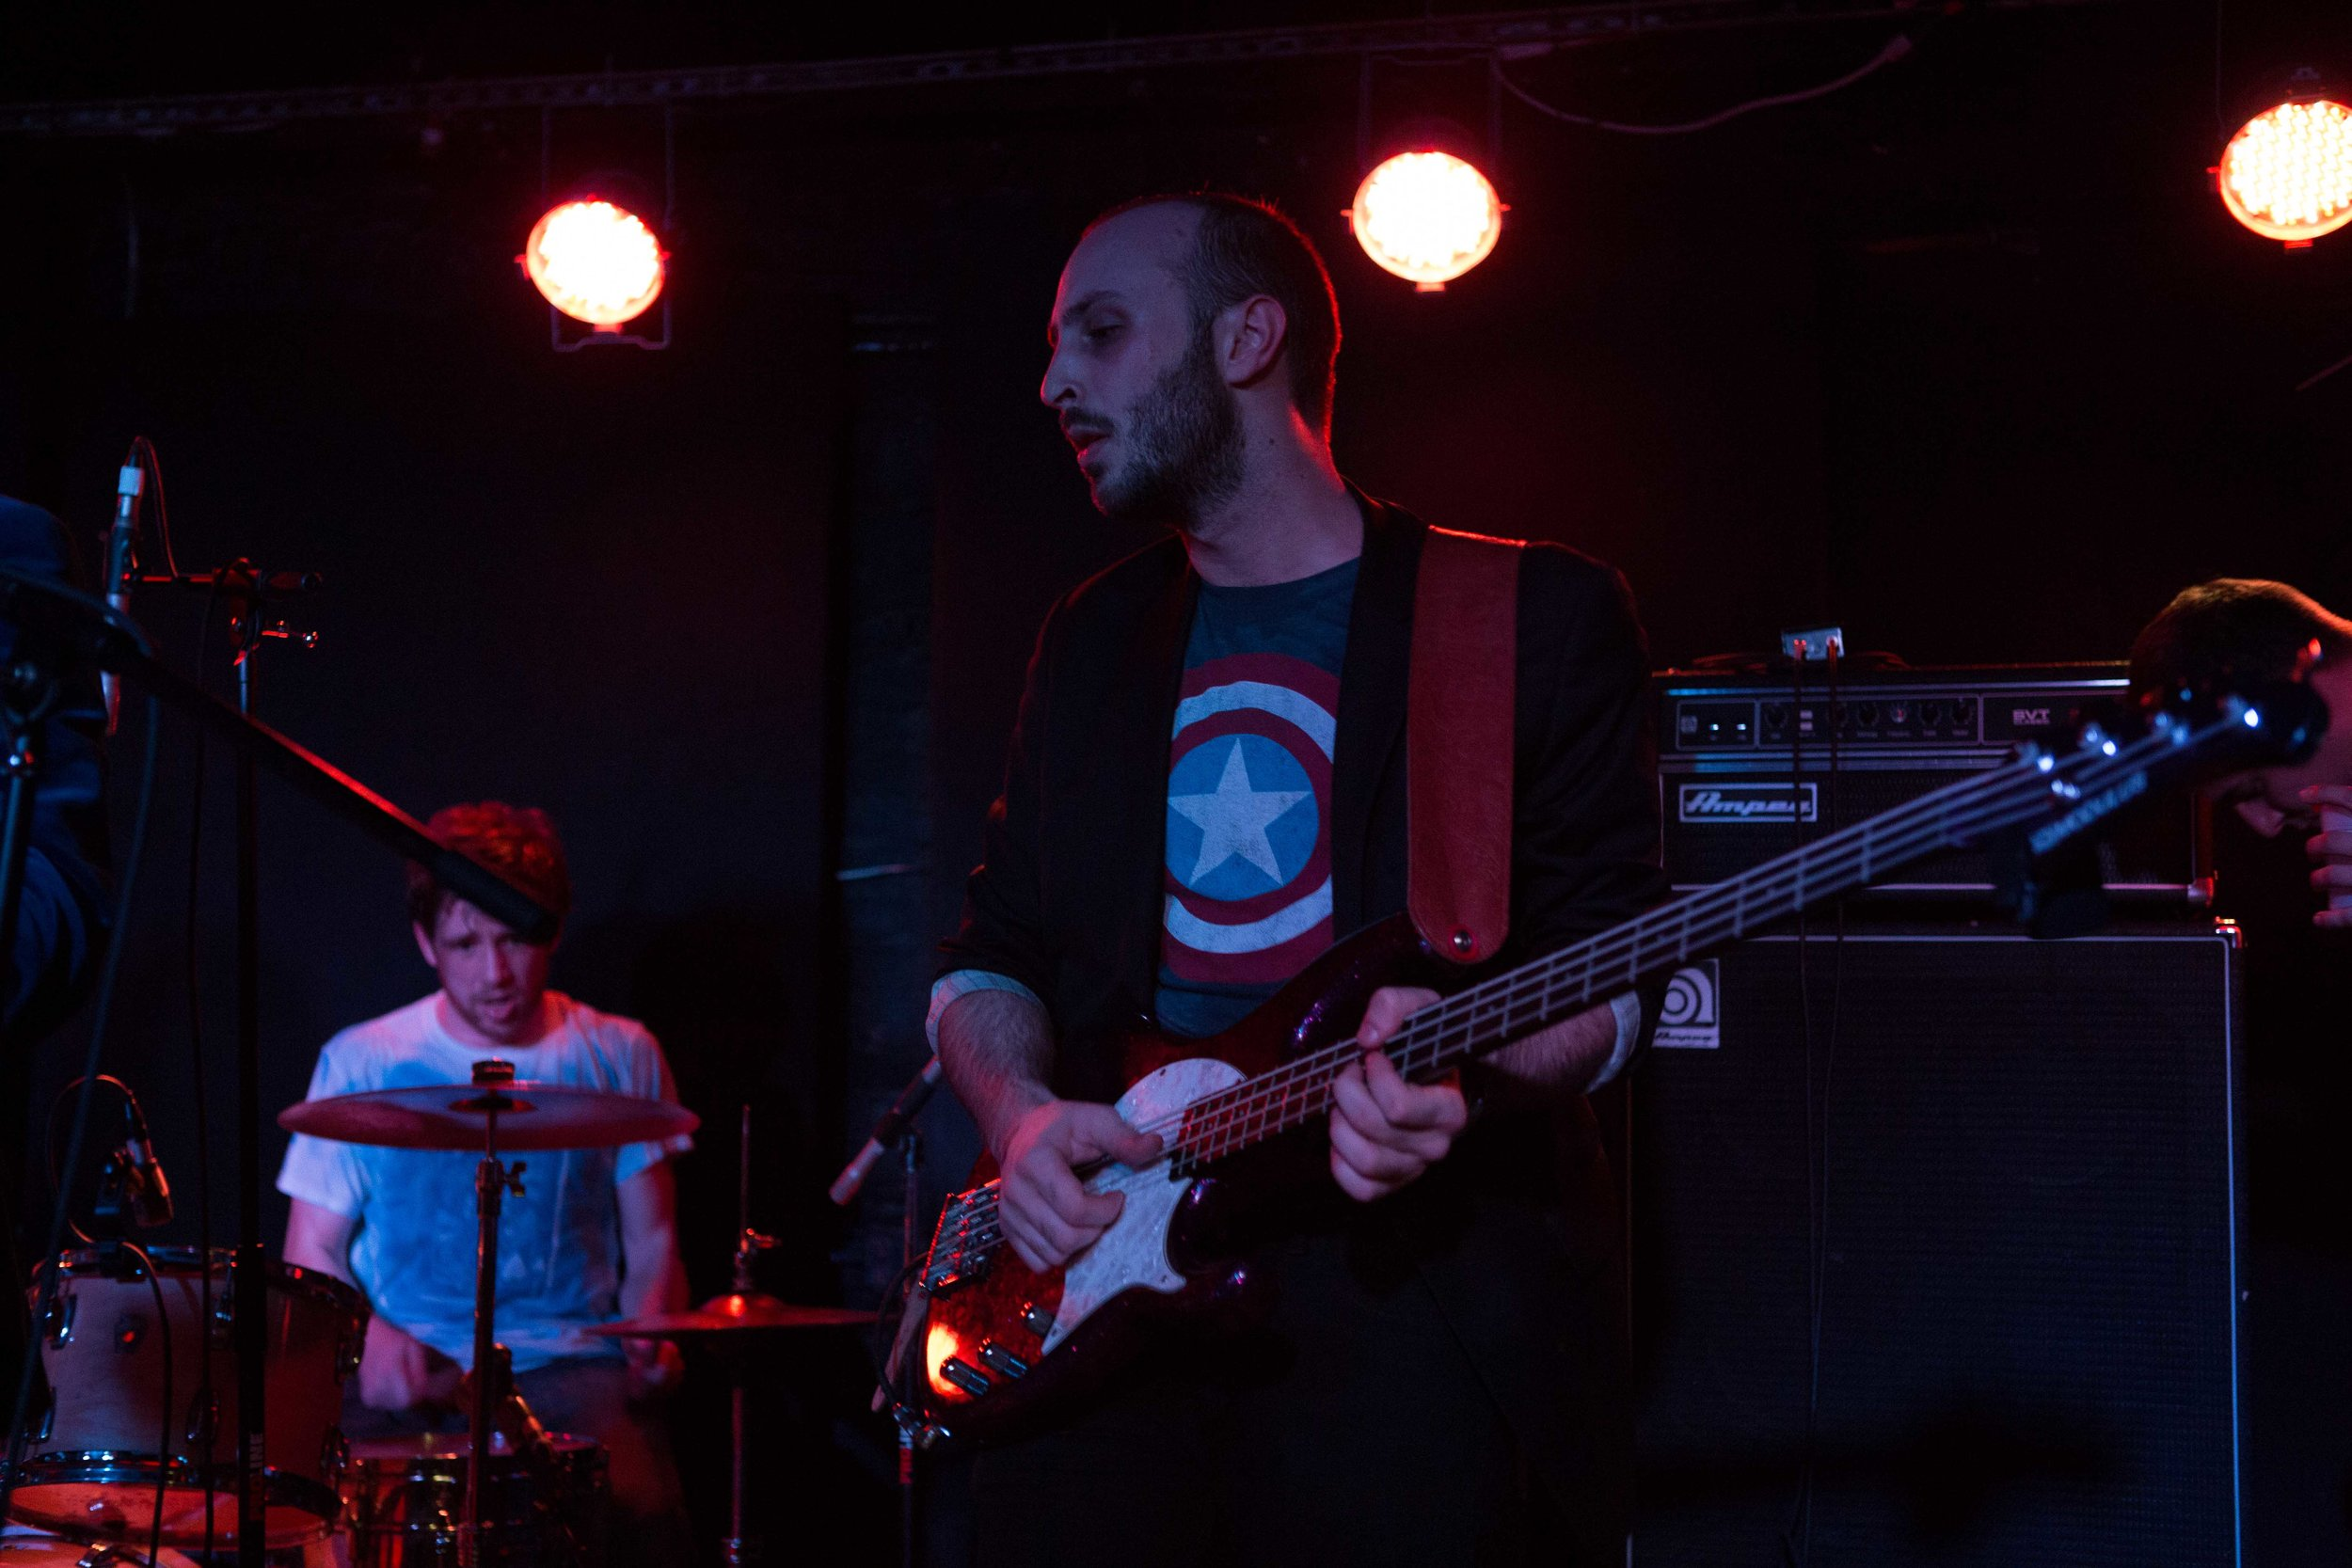 Mercury_Lounge_-_2013.03.16-48.jpg